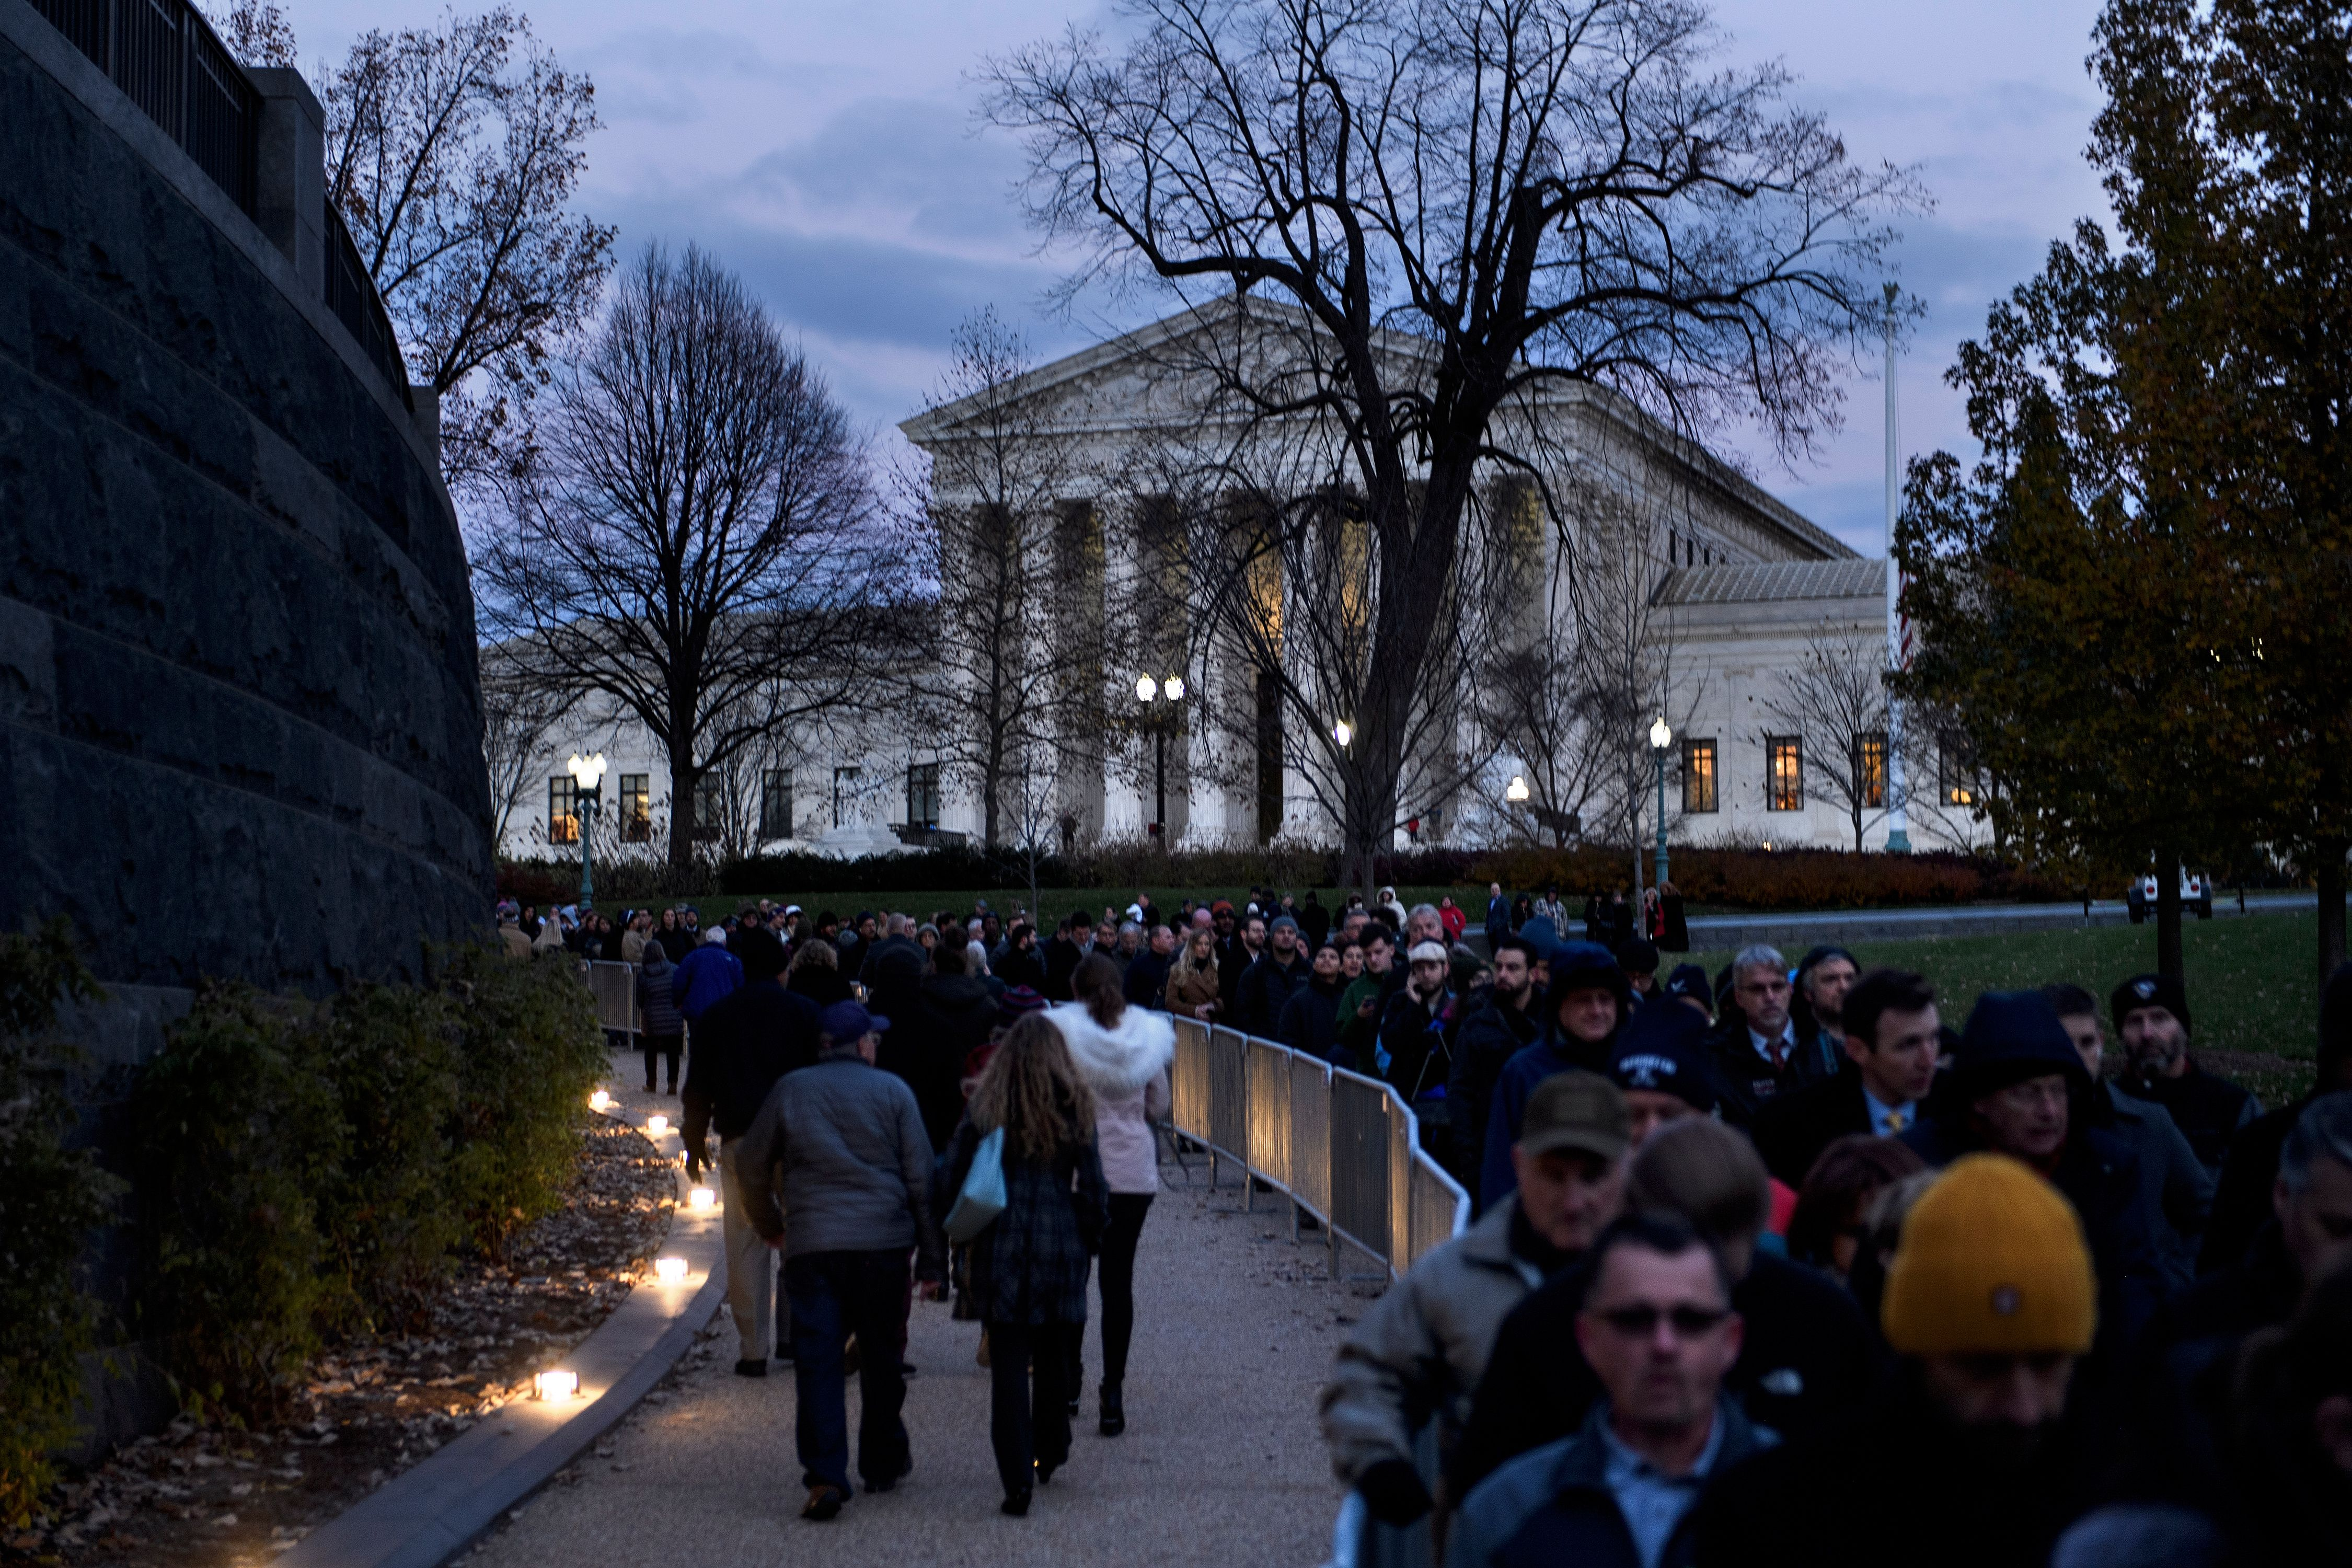 People wait in line to pay respects as the remains of former President George H.W. Bush lie in state in the US Capitol's rotunda Tuesday.